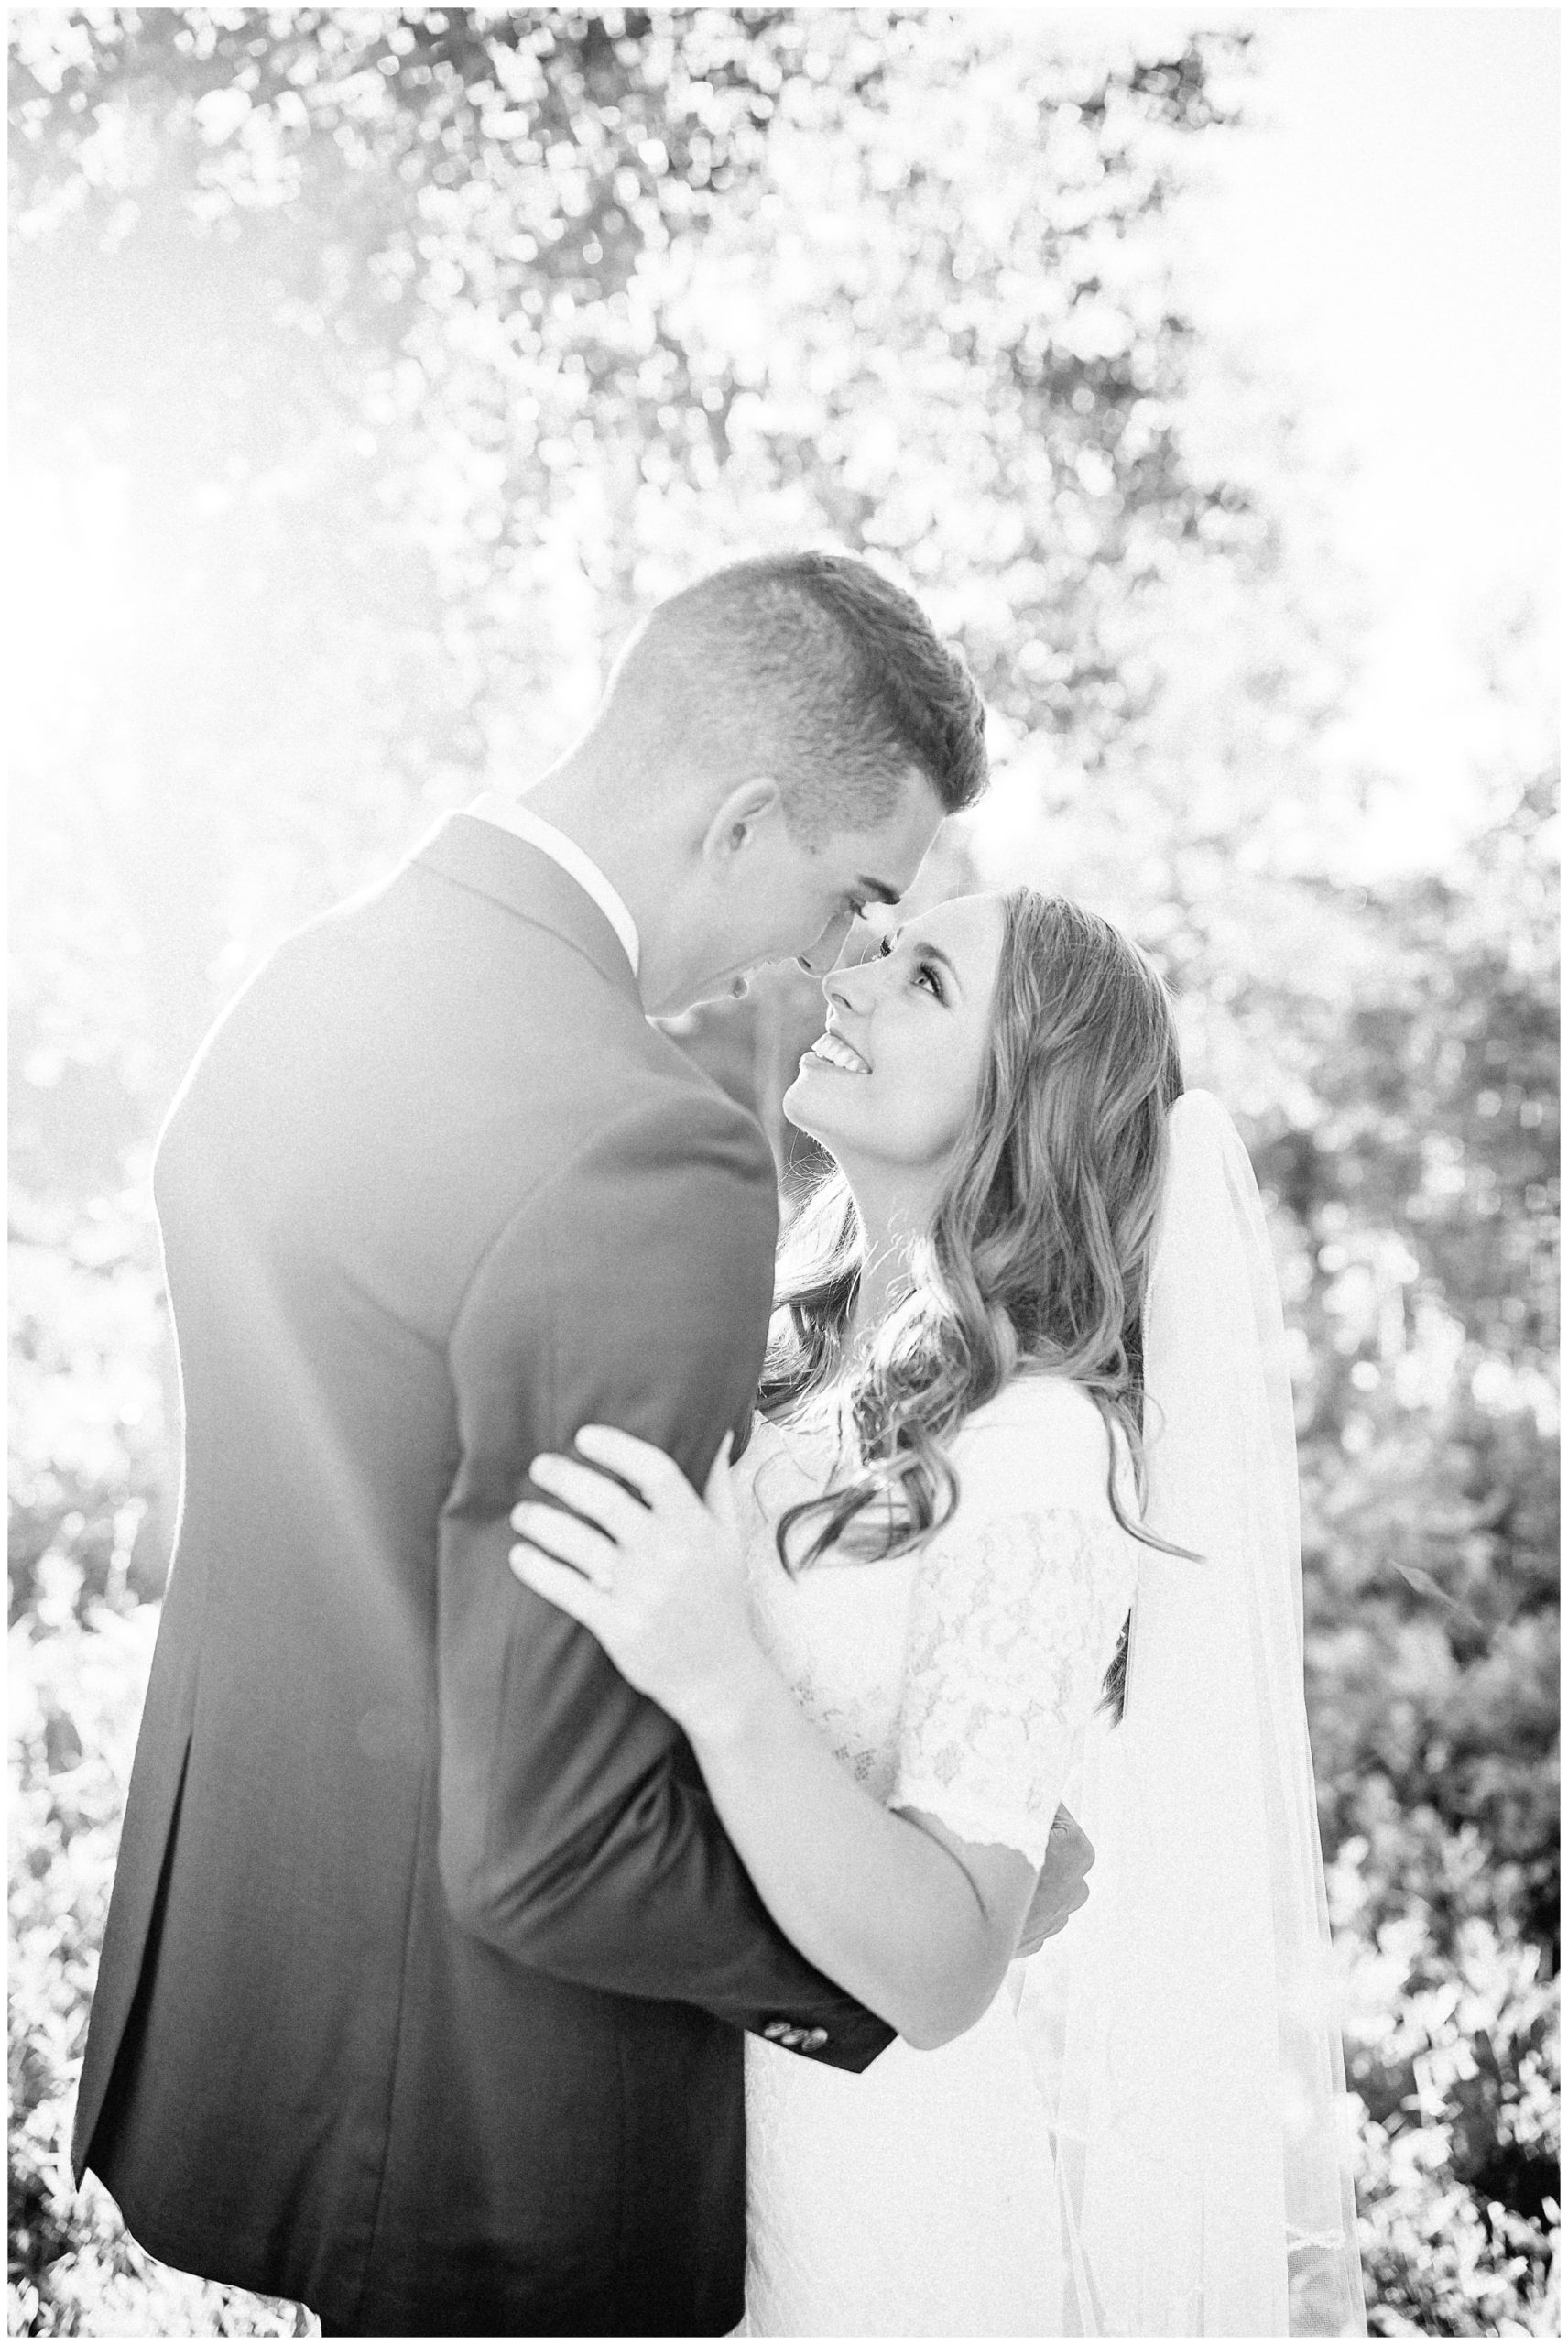 Eskimo kisses in the mountains for their aspen tree bridals